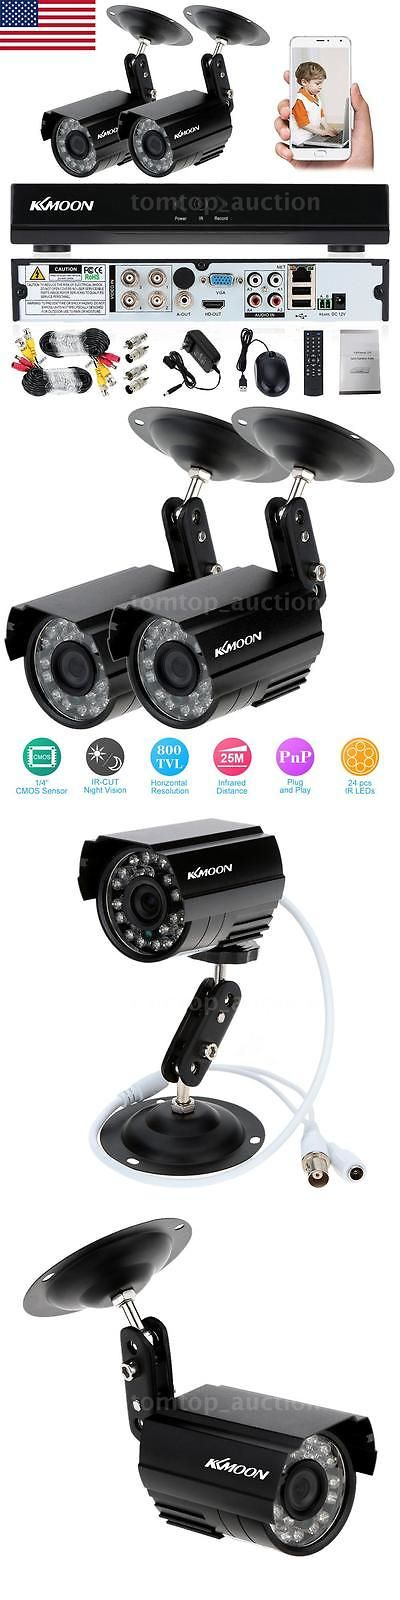 Surveillance Security Systems: Kkmoon 4Ch 960H Dvr 2Pcs Outdoor 800Tvl Night Vision Cctv Security Camera System BUY IT NOW ONLY: $56.9